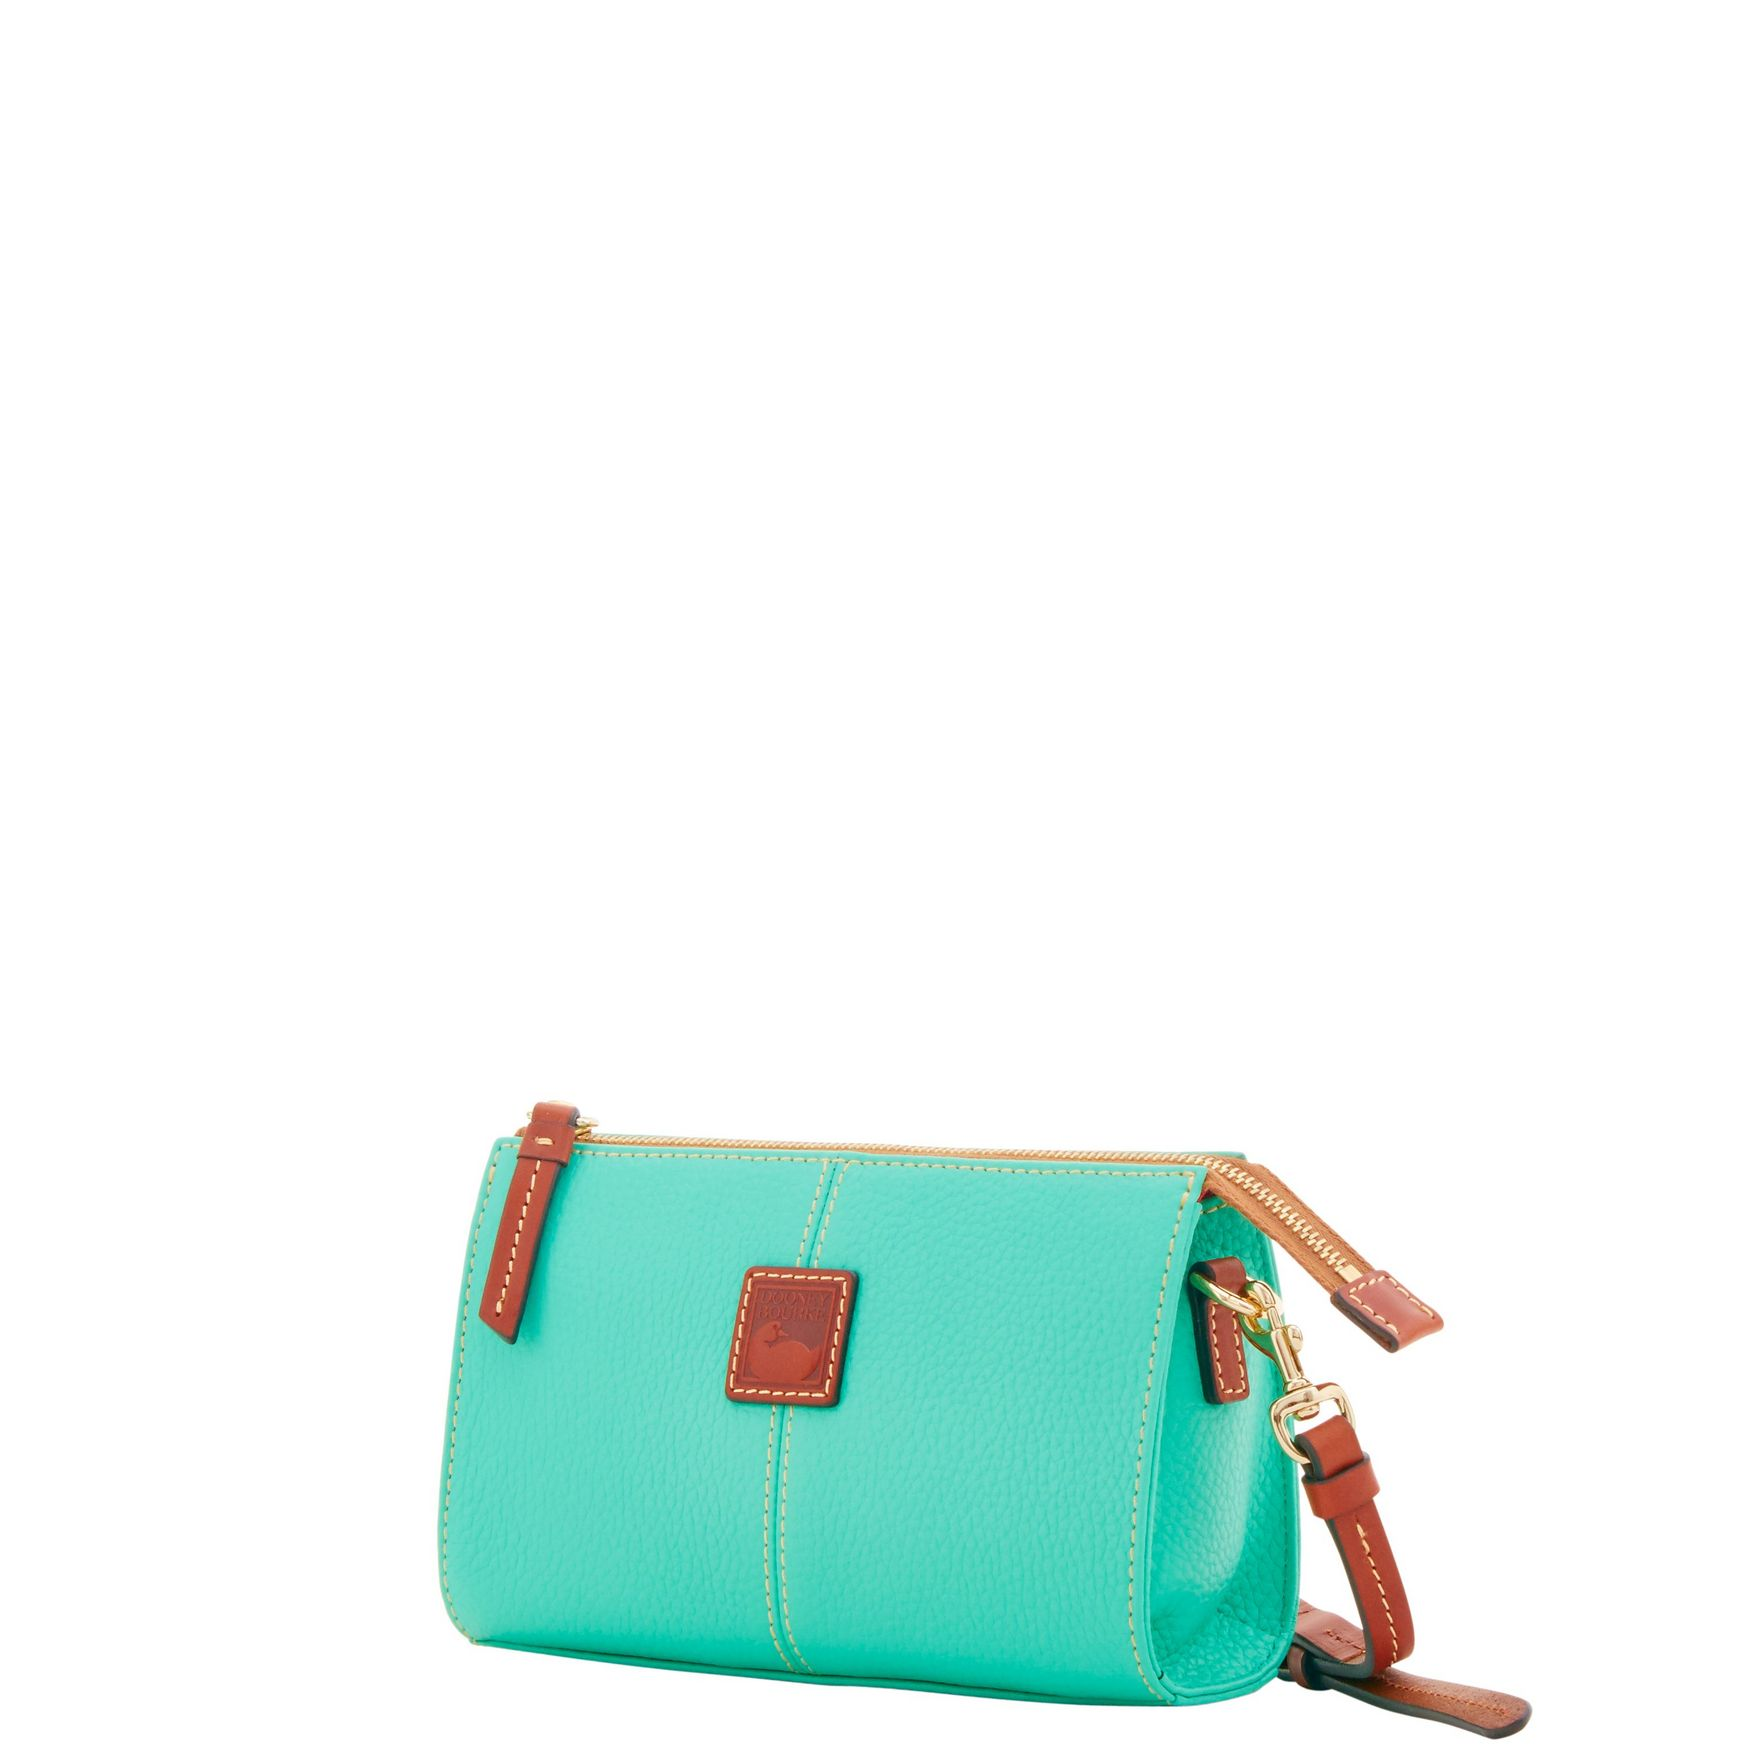 Dooney-amp-Bourke-Pebble-Grain-Small-Janine-Crossbody-Shoulder-Bag thumbnail 28